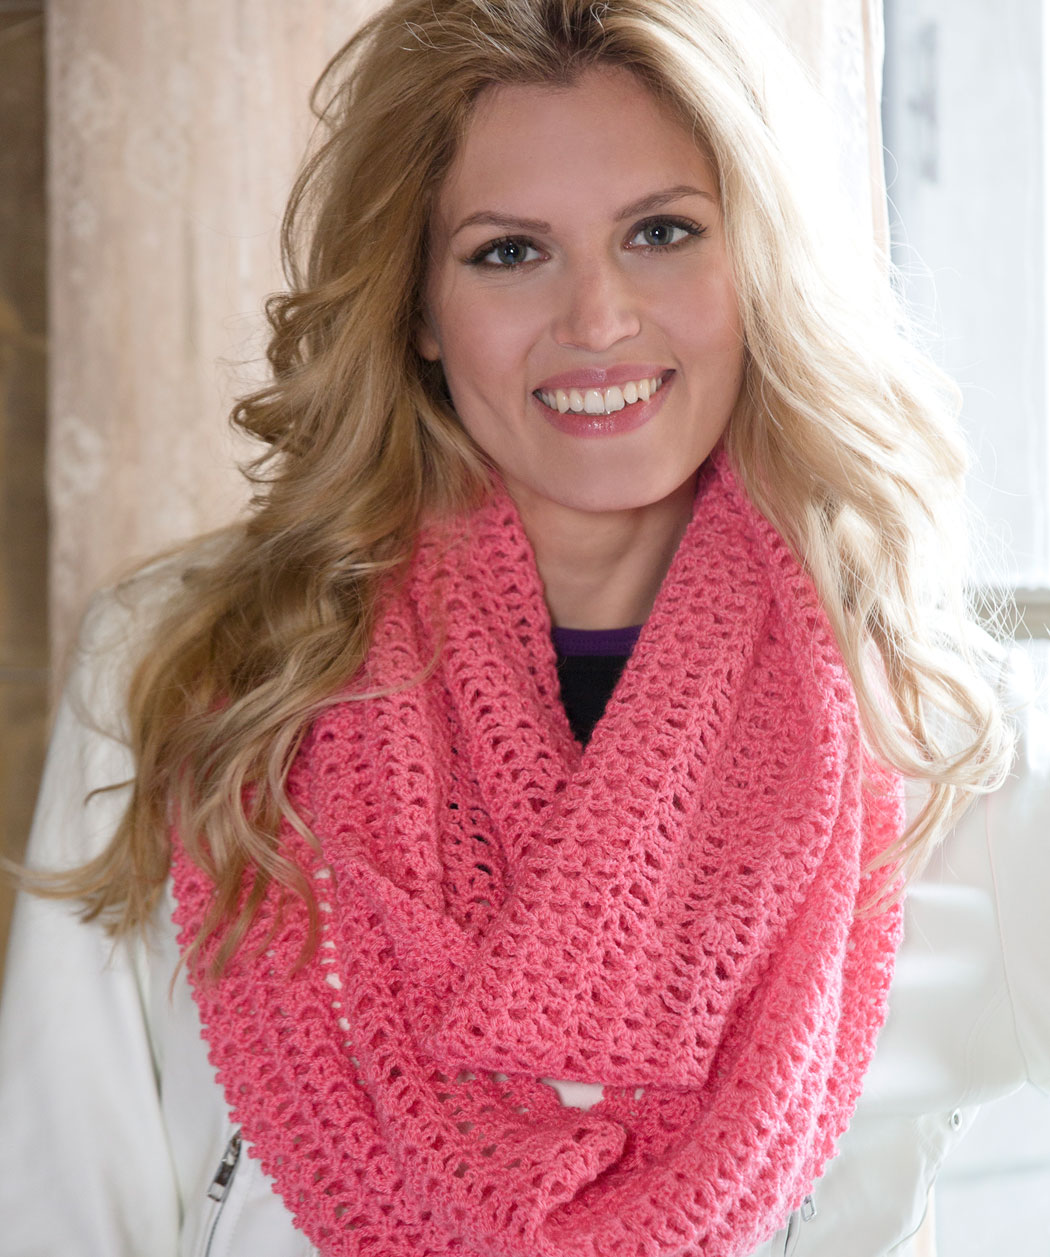 Free Crochet Patterns For Lightweight Scarves : These 20+ Free and Easy Crochet Scarf Patterns Will Blow ...